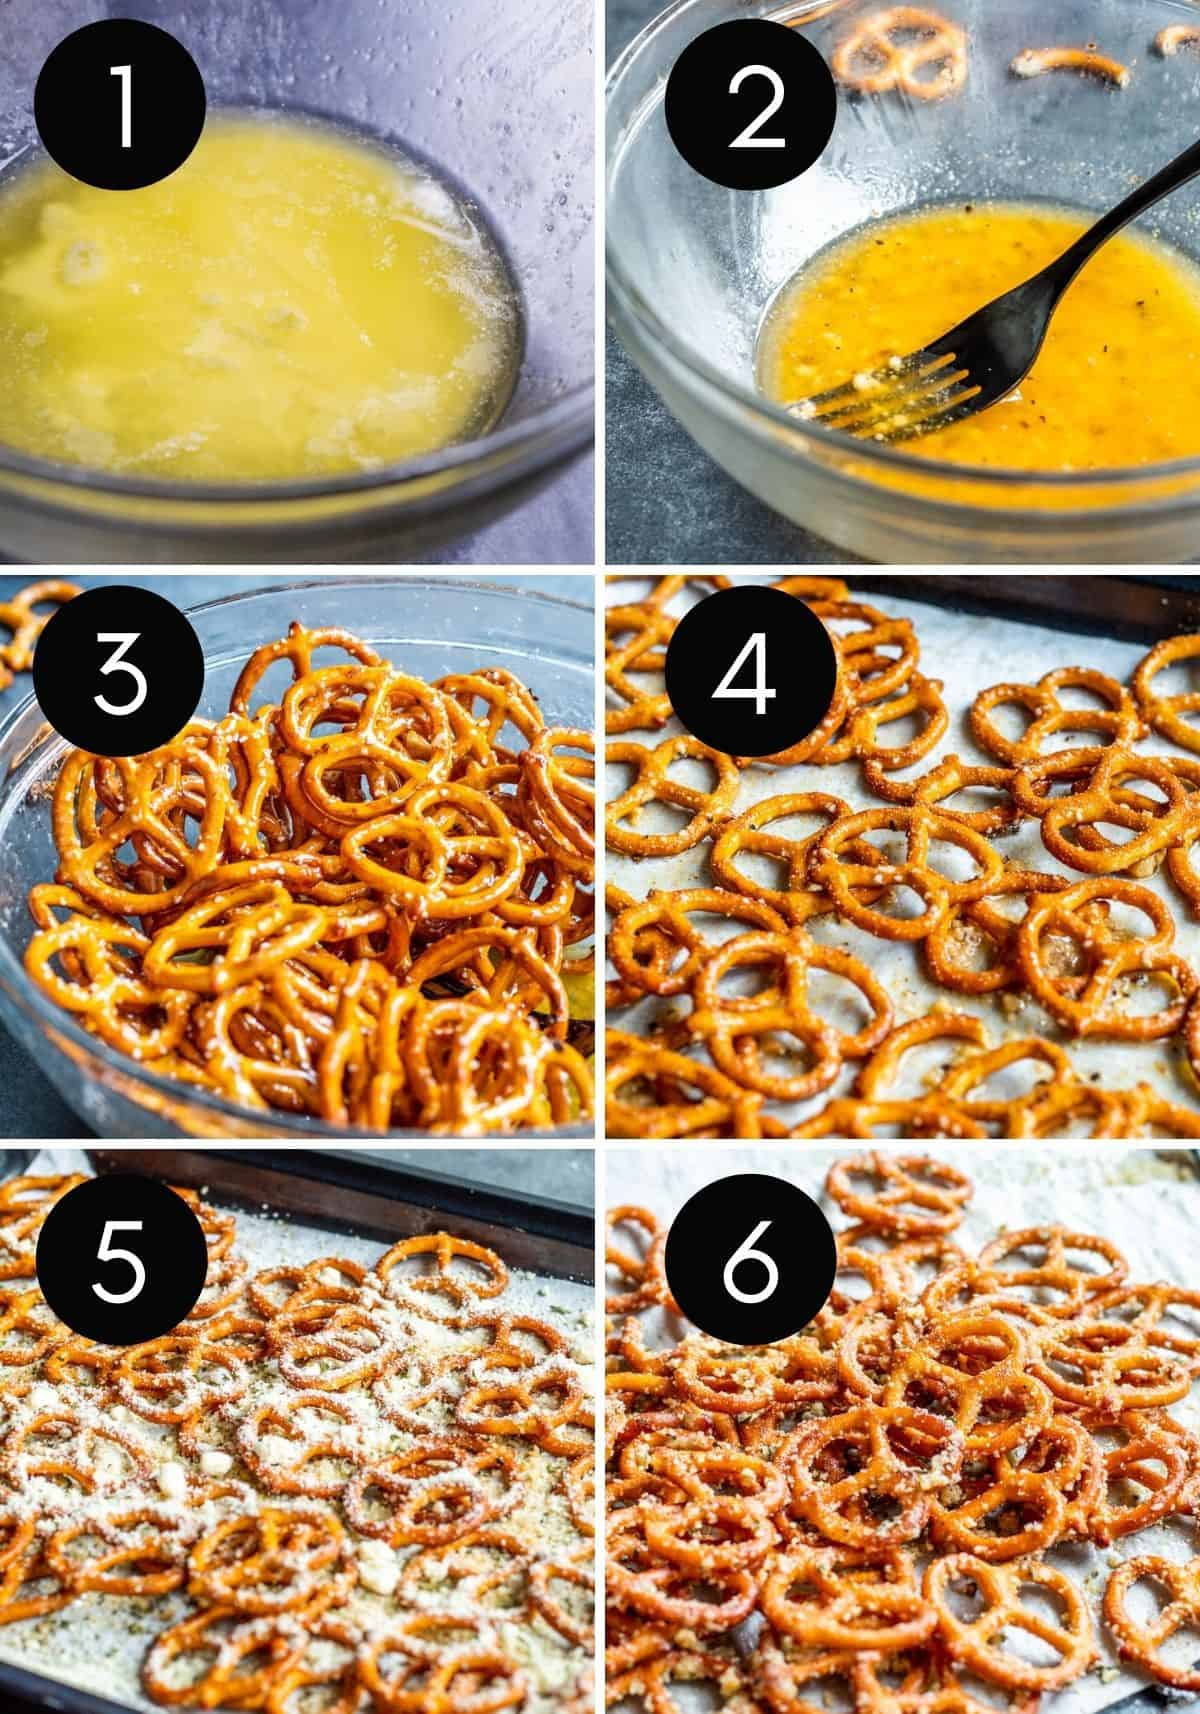 Six prep image collage showing how to make pretzels from start to finish.